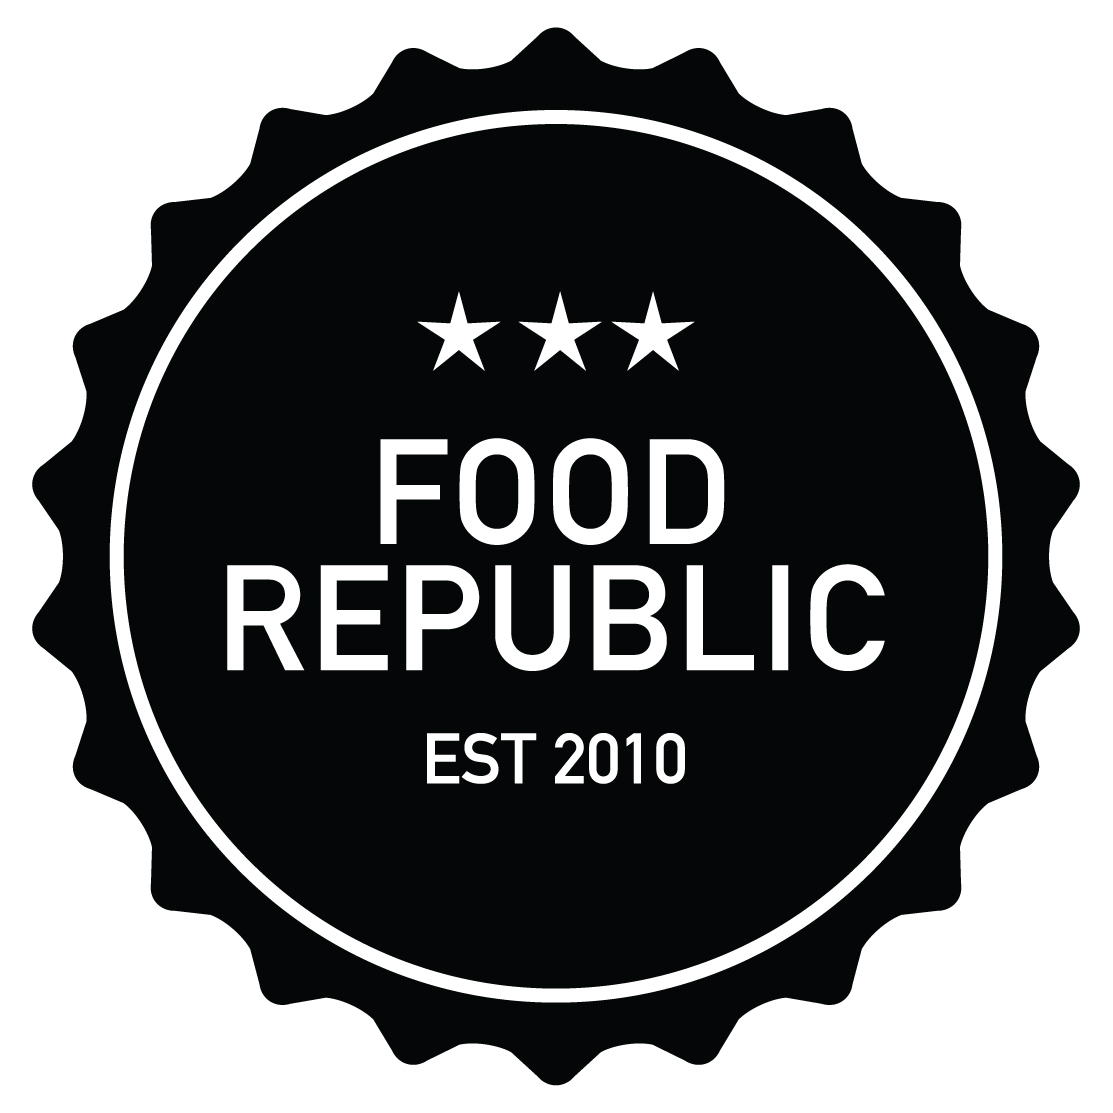 "Food Republic    Pinch Food Design Plays with Food, Design & Flavors  By Laila Gohar  Imagine stepping into a party and seeing hors d'oeuvres attached to balloons hanging in mid-air. You might have to jump, or stand on your toes to get a taste of the action, but for set designer TJ Girard and chef Bob Spiegel, founders of Pinch Food Design, that is precisely the point. The New York-based catering company was born out of the desire to add a performance aspect to the food served at parties. In 2011, the duo joined forces, and launched Pinch Food Design with the goal of creating ""food furniture"" and servingware that allows for an interactive catering experience.   read more..."